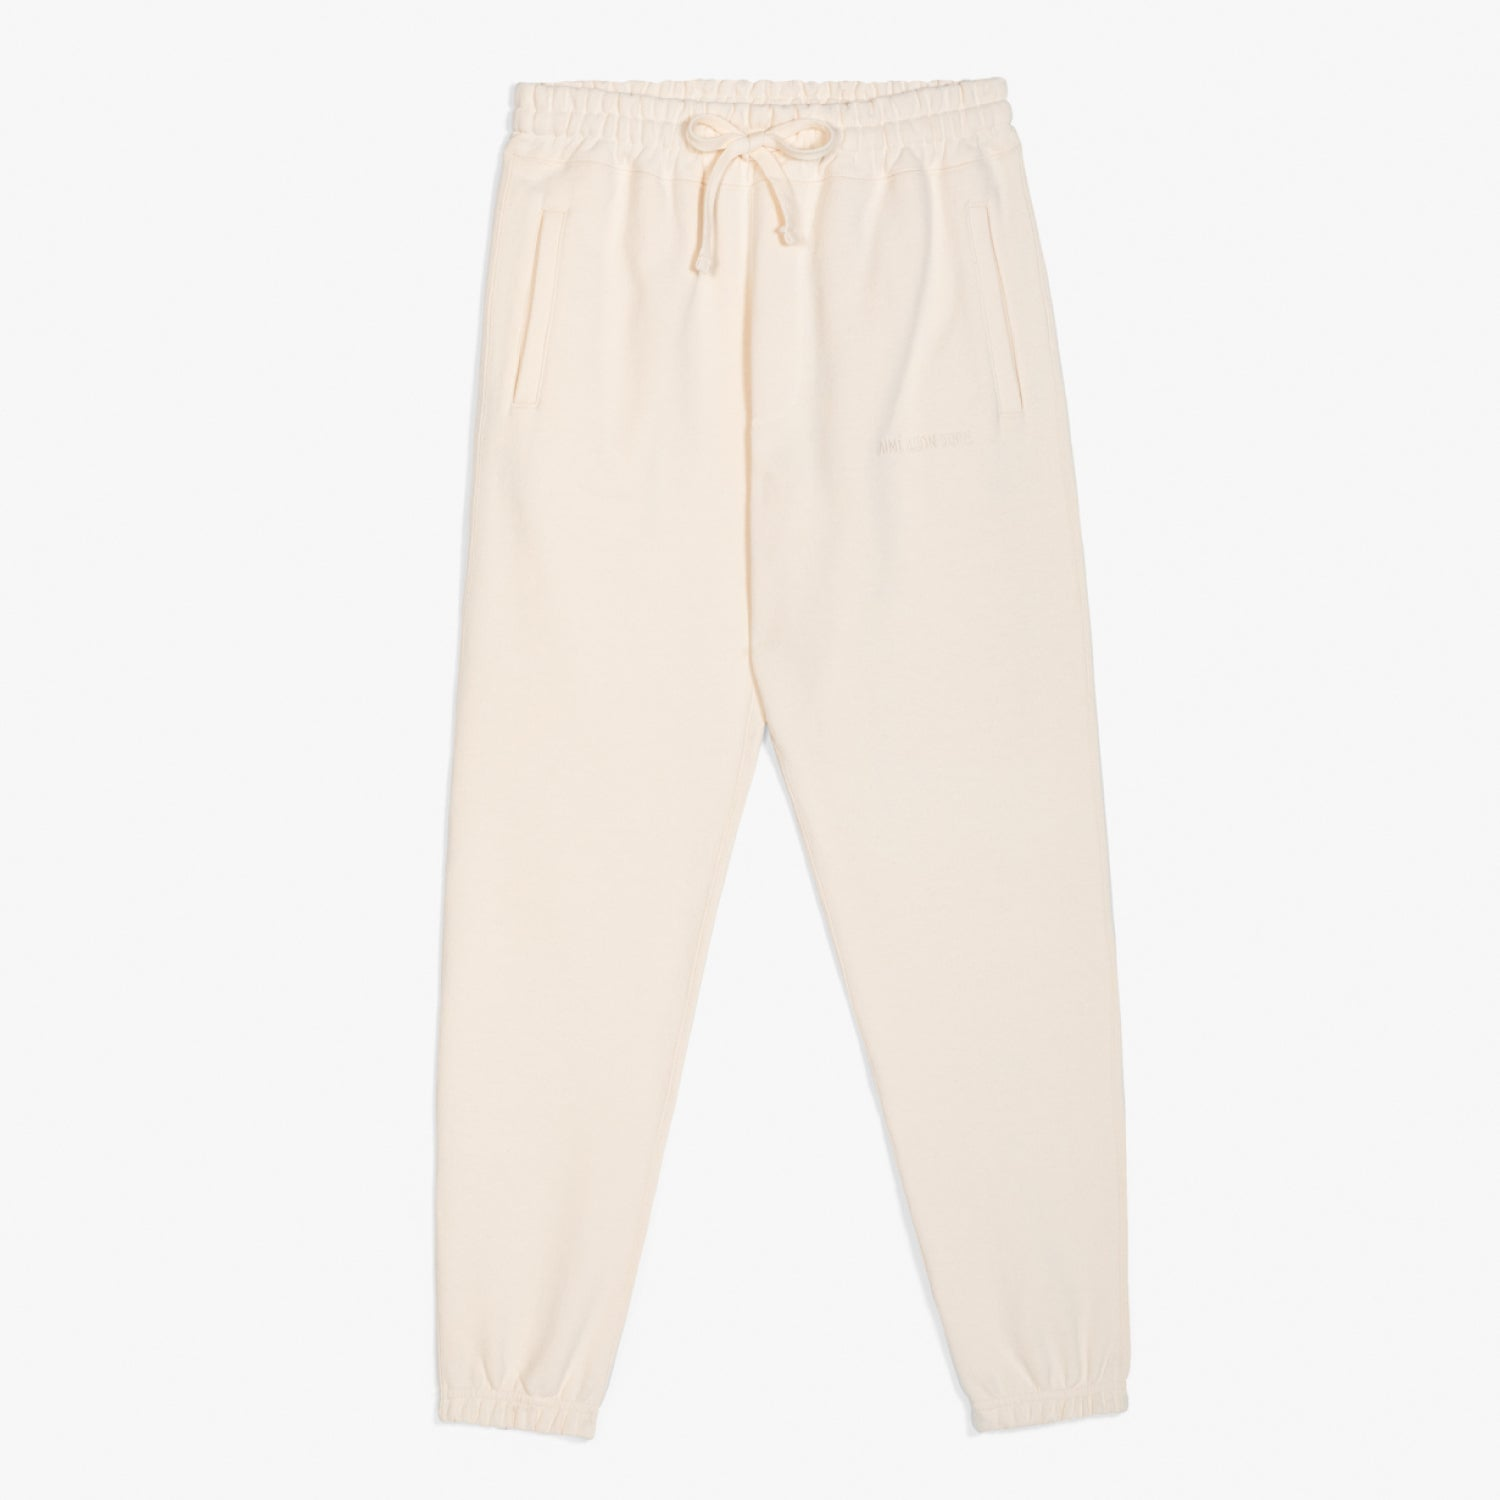 FRENCH TERRY SWEAT PANTS - CREAM